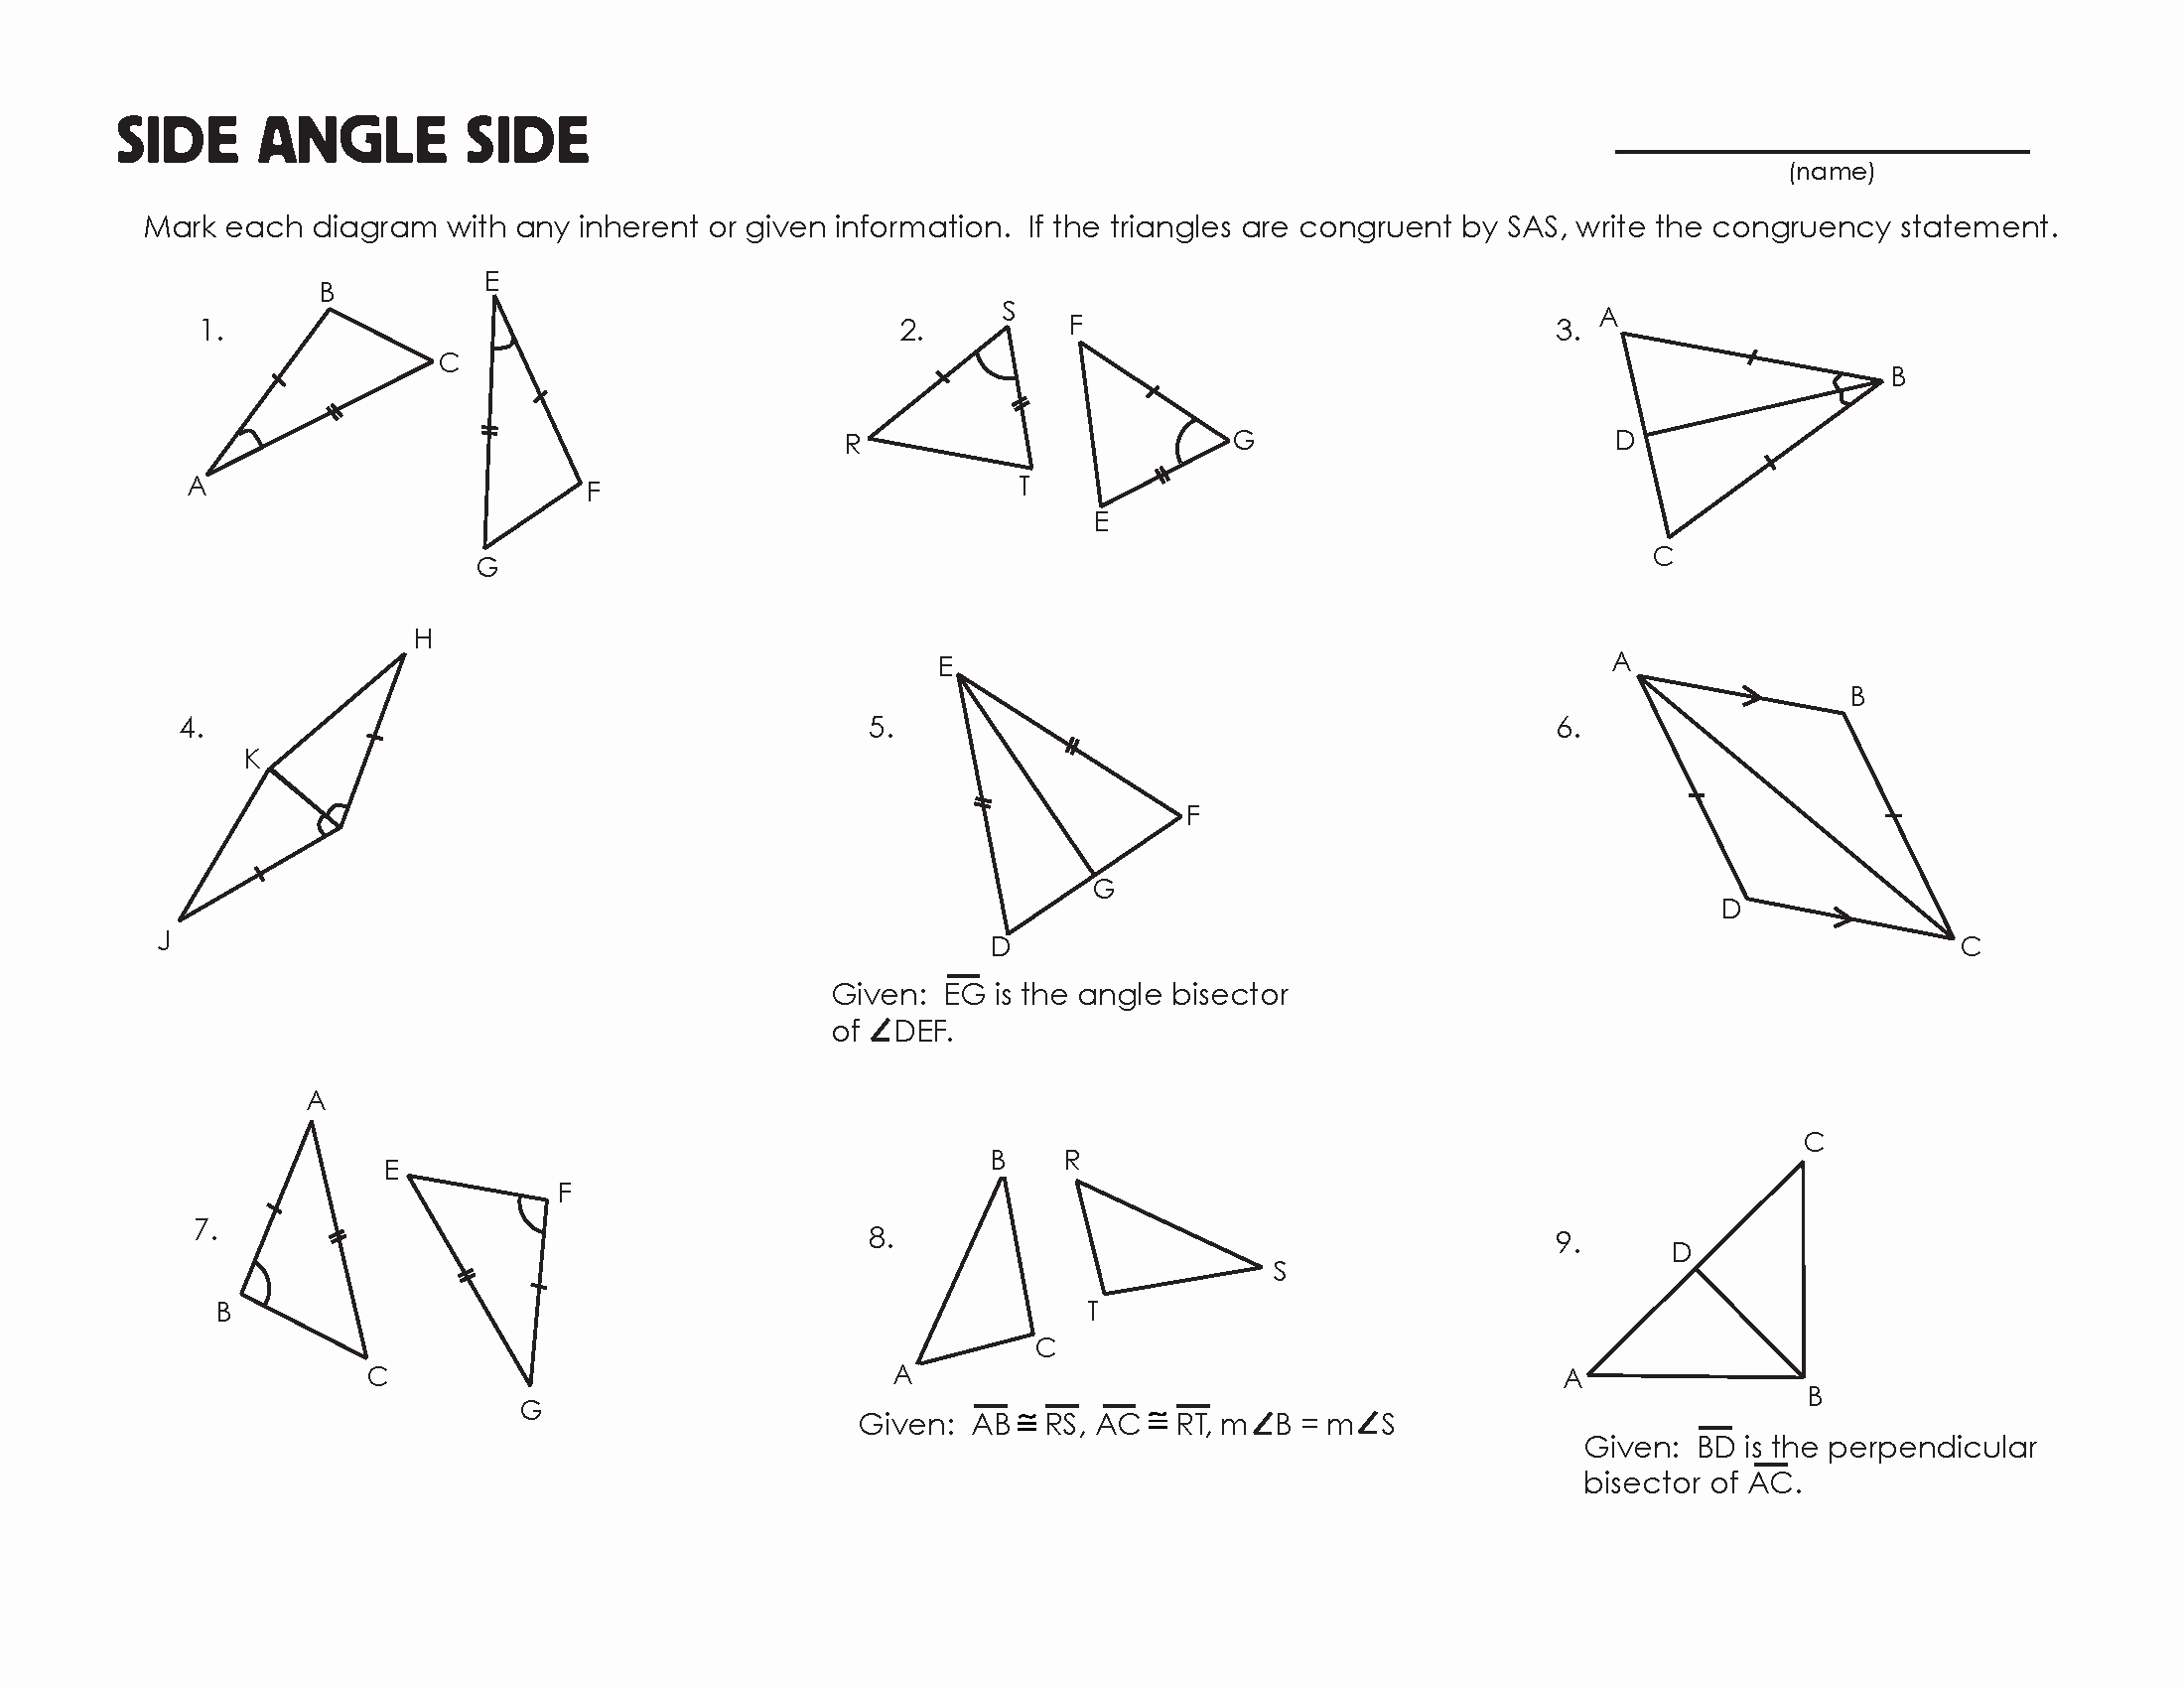 Proving Triangles Congruent Worksheet Answers New Congruent Triangles Worksheet Flora